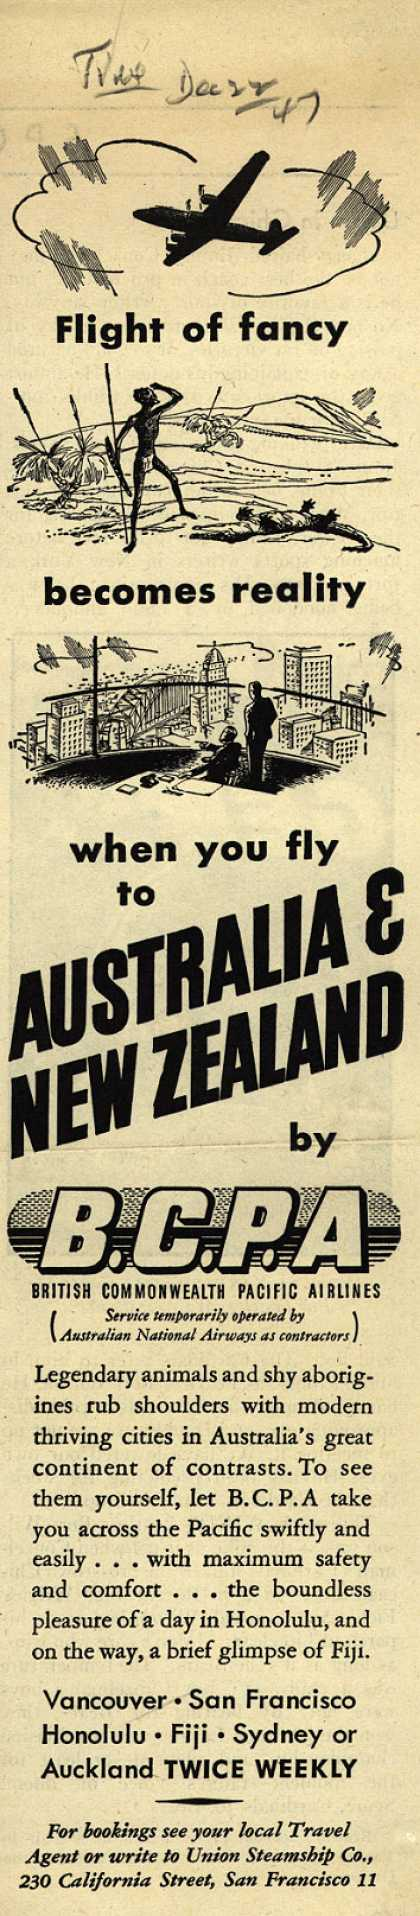 British Commonwealth Pacific Airlines, Limited's Australia and New Zealand – Flight of Fancy Becomes Reality When You Fly to Australia & New Zealand (1947)